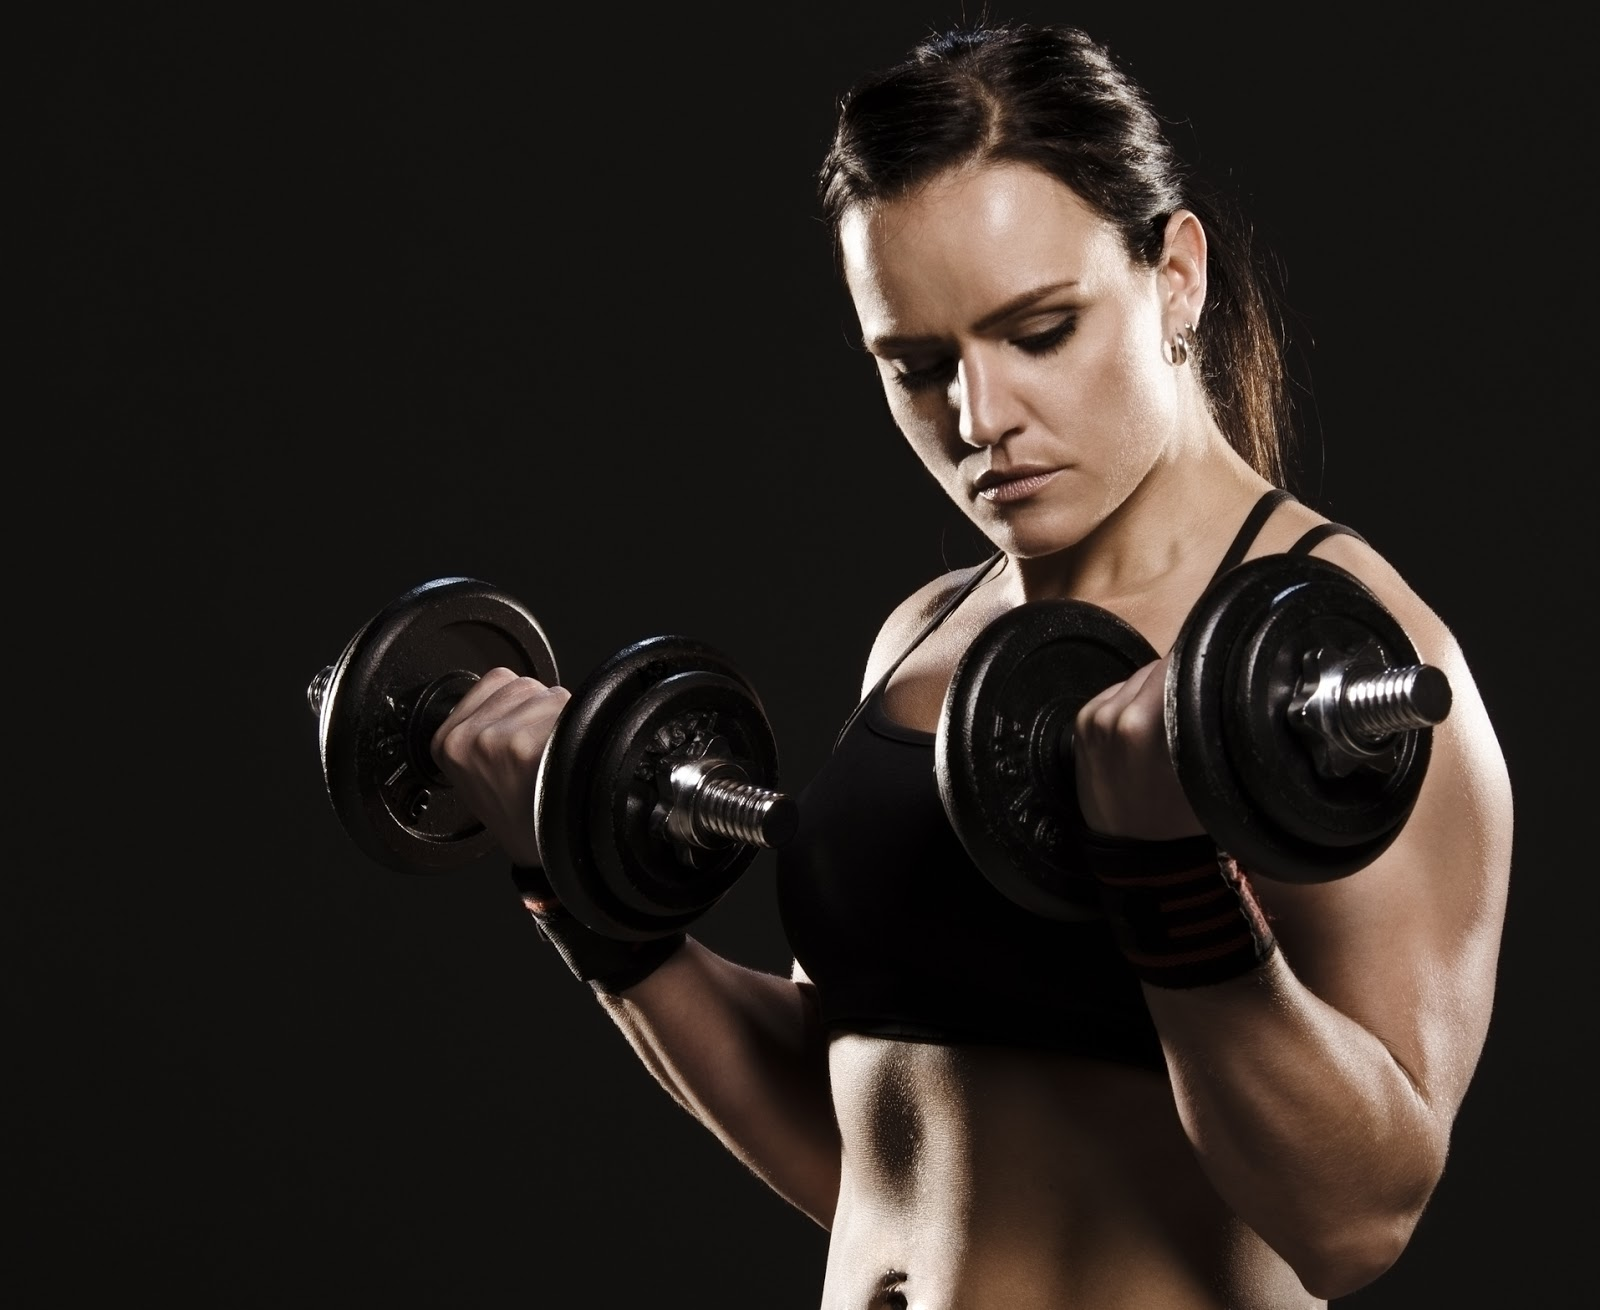 clomid for women bodybuilding